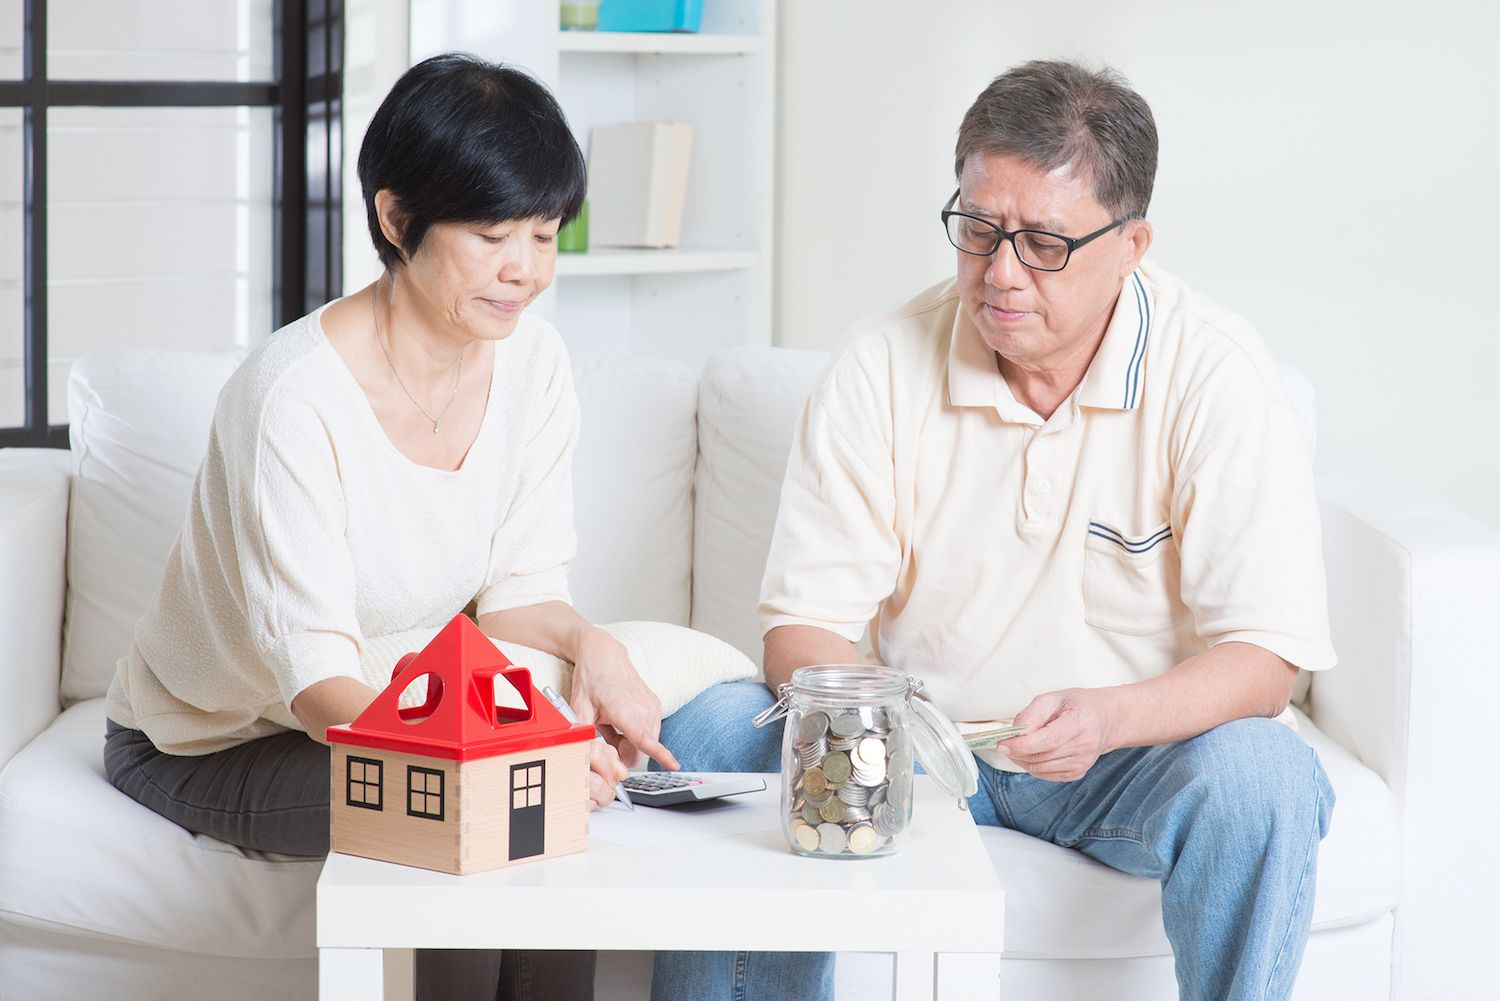 Six Things Your Homeowners Insurance Policy Won't Cover